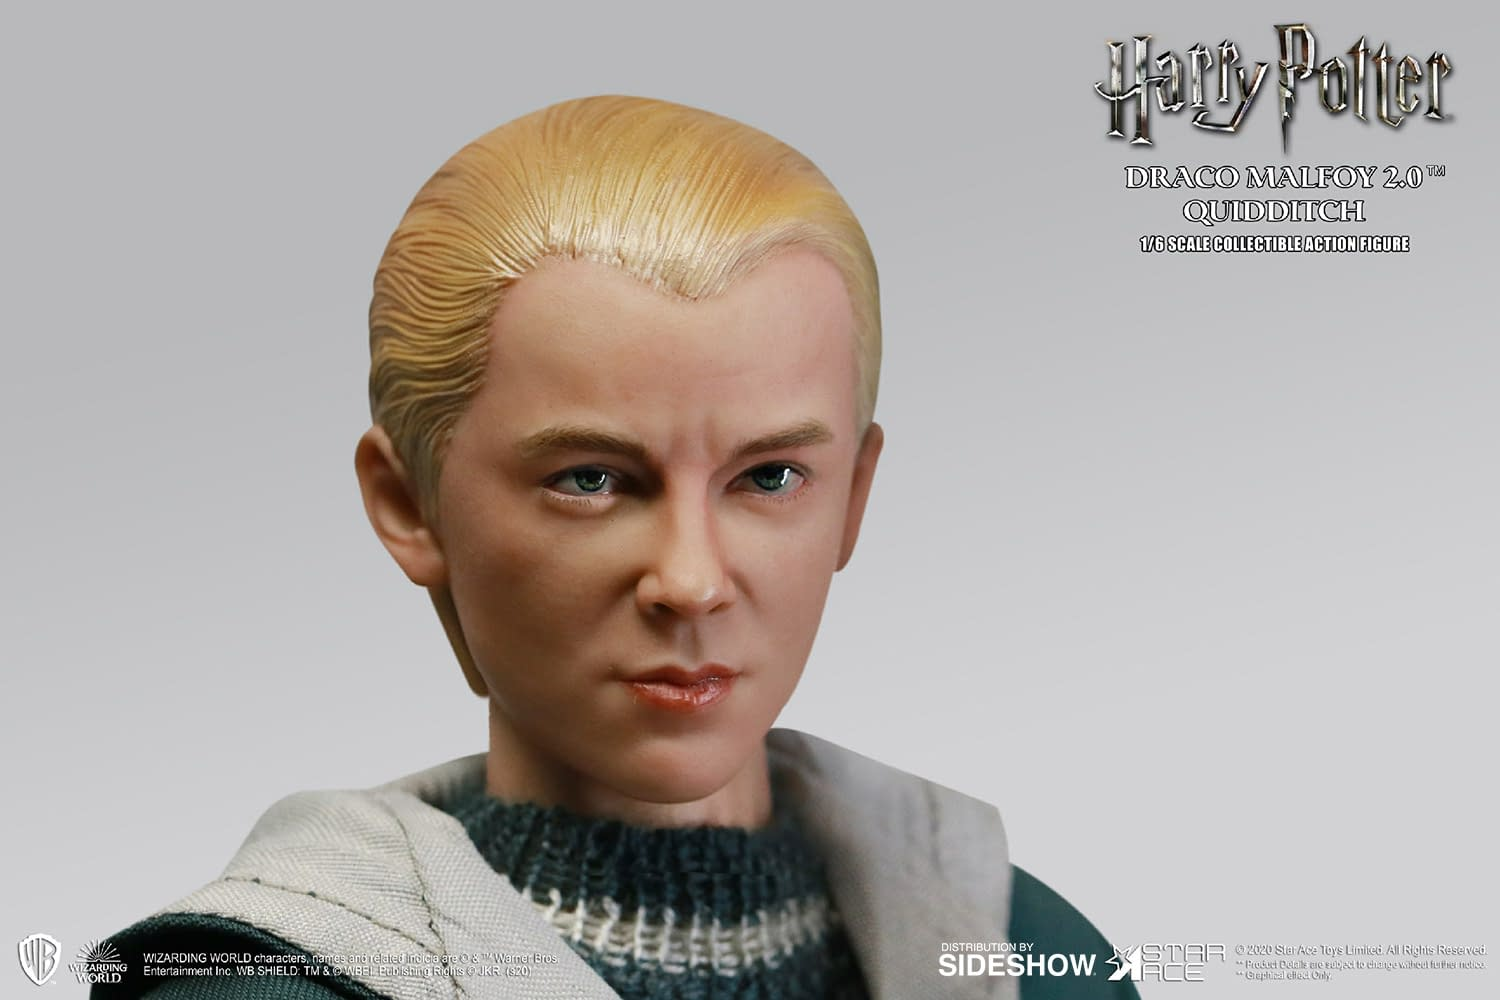 harry-potter-draco-malfoy-20-quidditch-twin-pack_harry-potter_gallery_5e83b21d34dd2